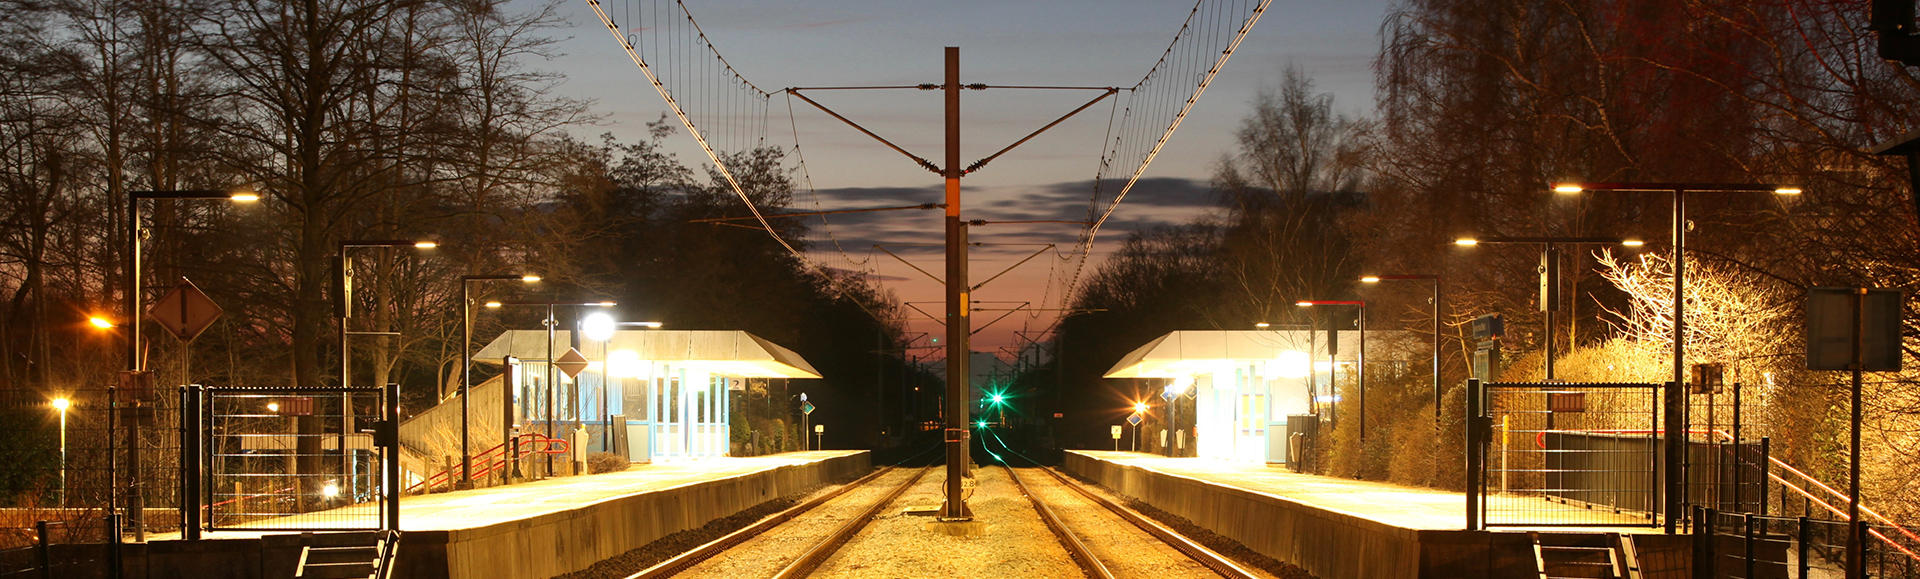 LIGHTING UP THE TRACKS OF THE DUTCH RAILWAYS